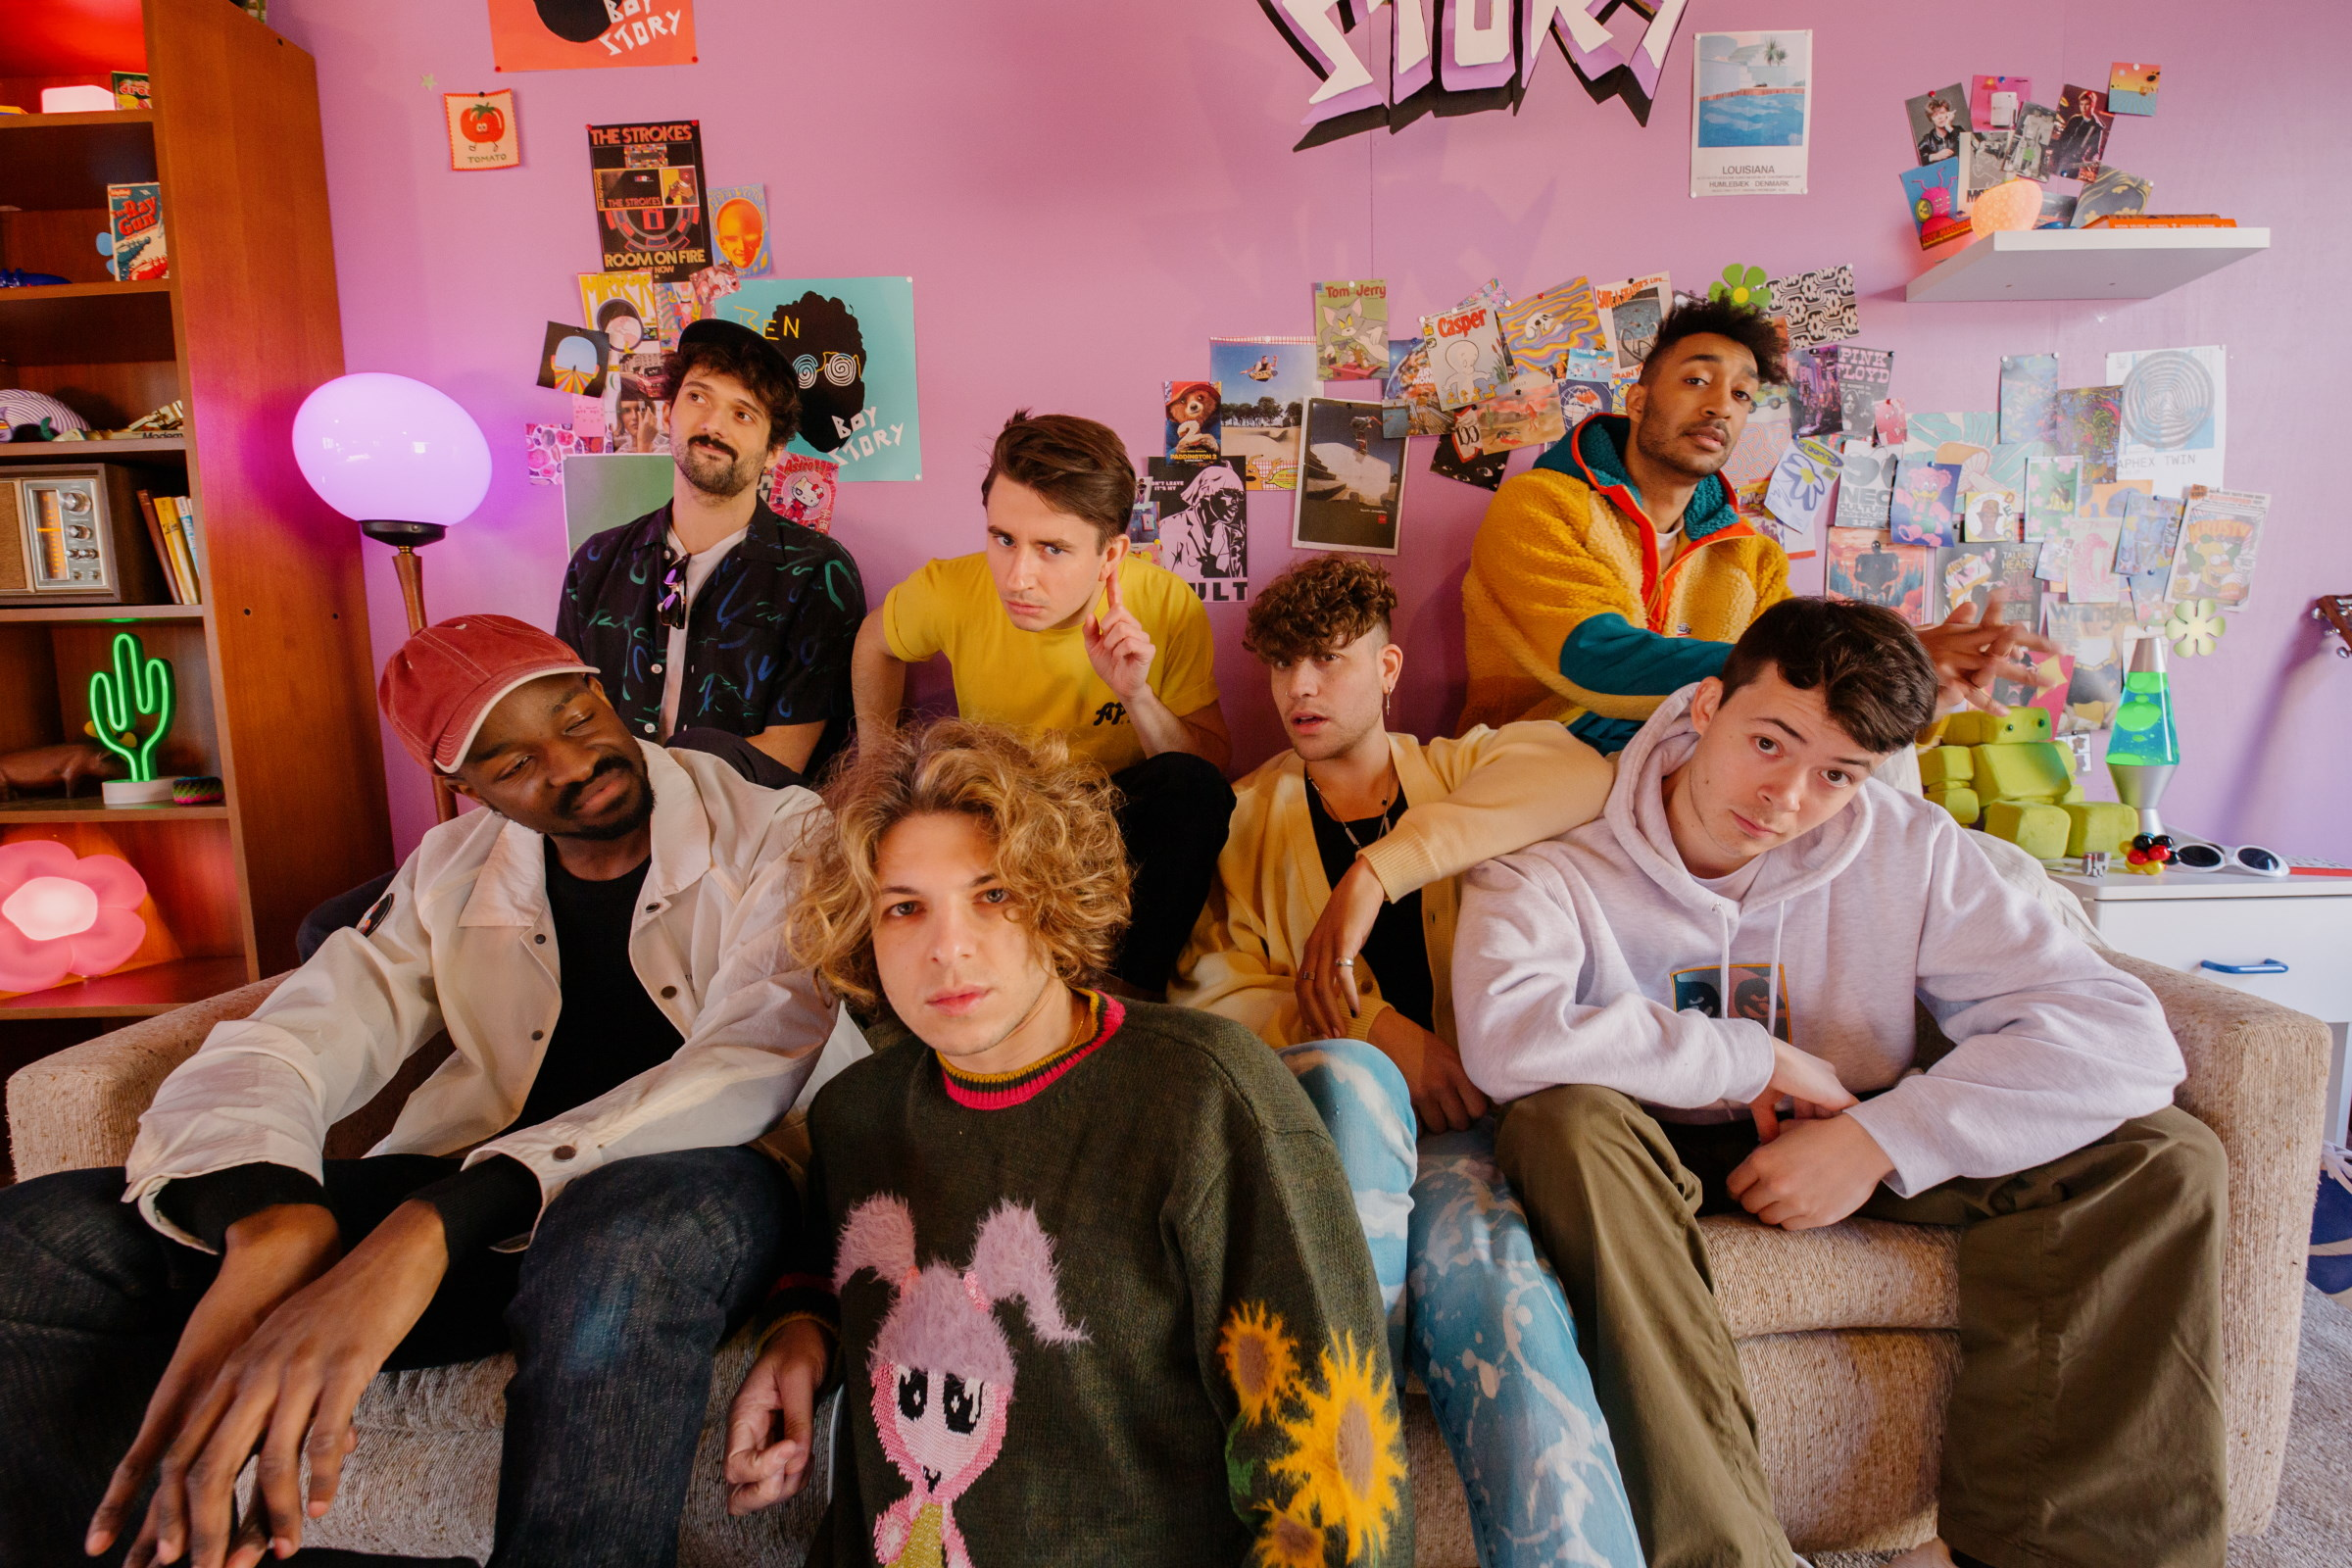 With A Tour On The Cards And A New Single, Juice Begins A New Chapter With 'Boy Story'